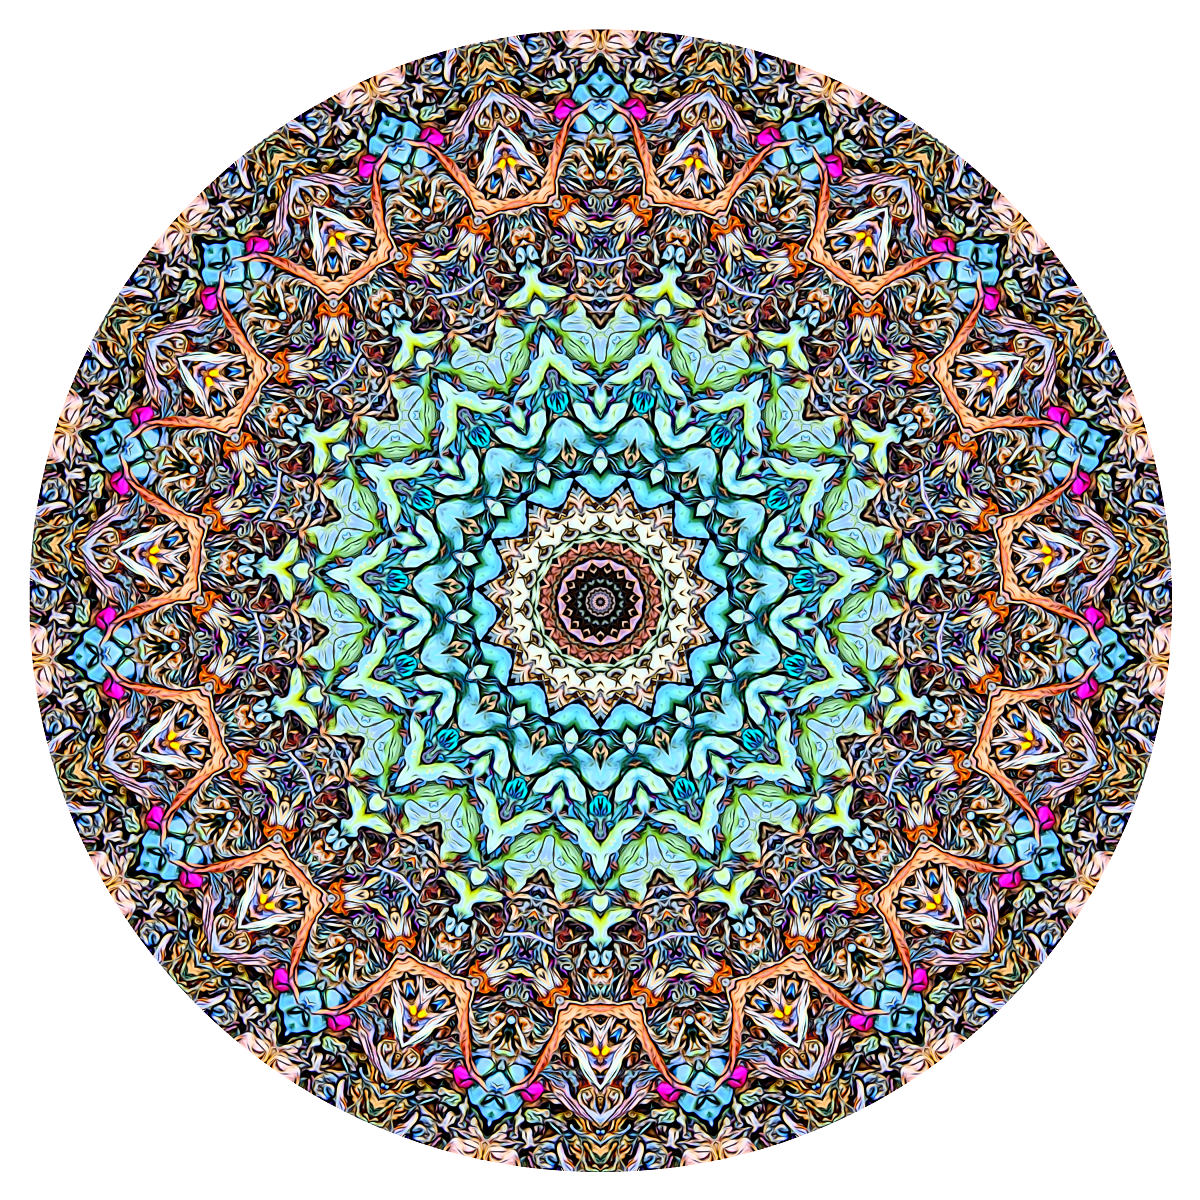 Career Mandala - stephen calhoun